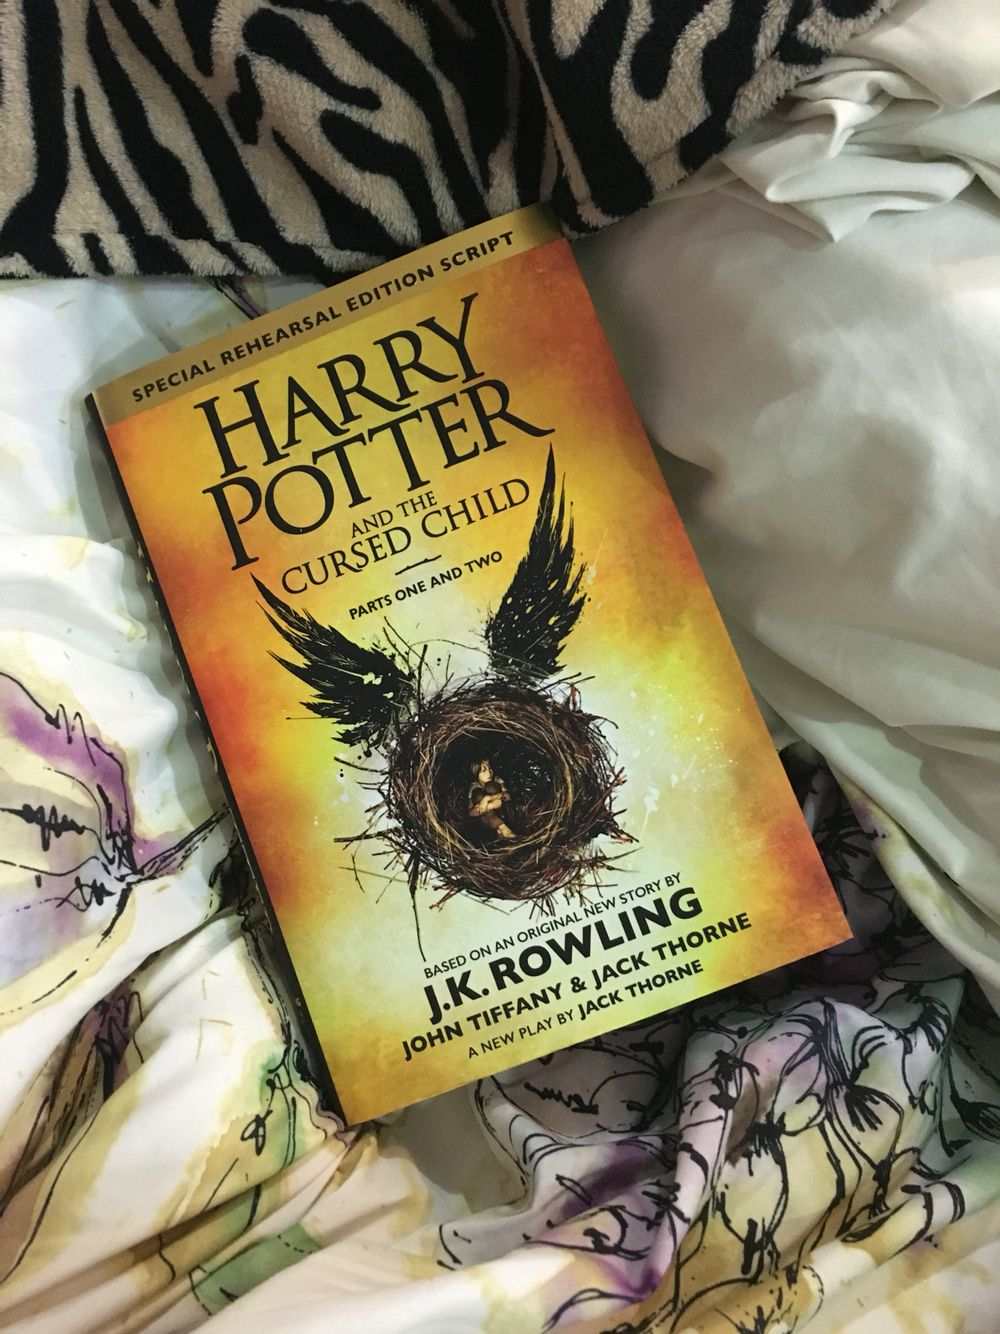 Pin By Shurouq On Books Cursed Child John Tiffany Children Book Cover